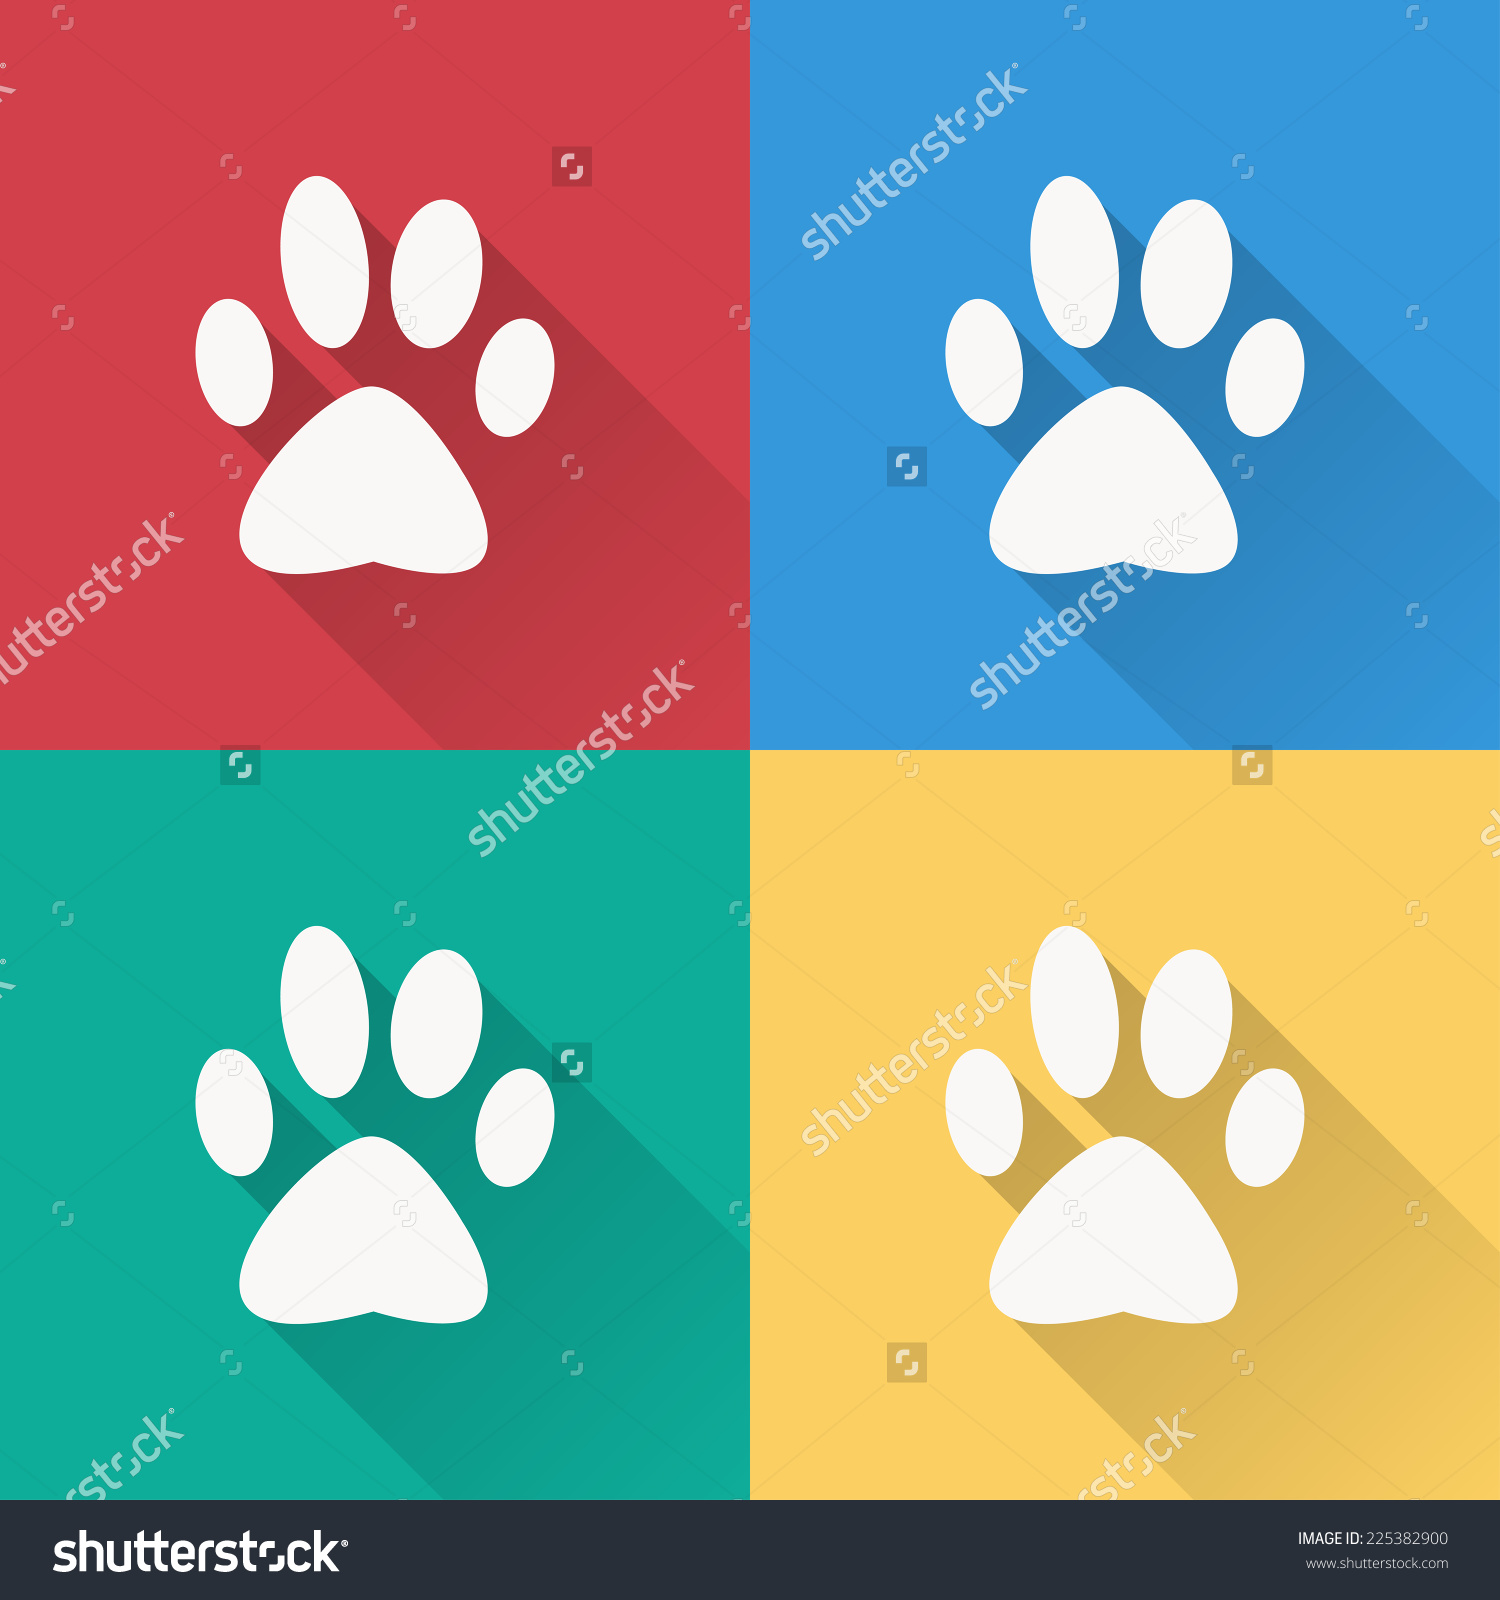 Dog Paw Icon Flat Design On Stock Vector 225382900.